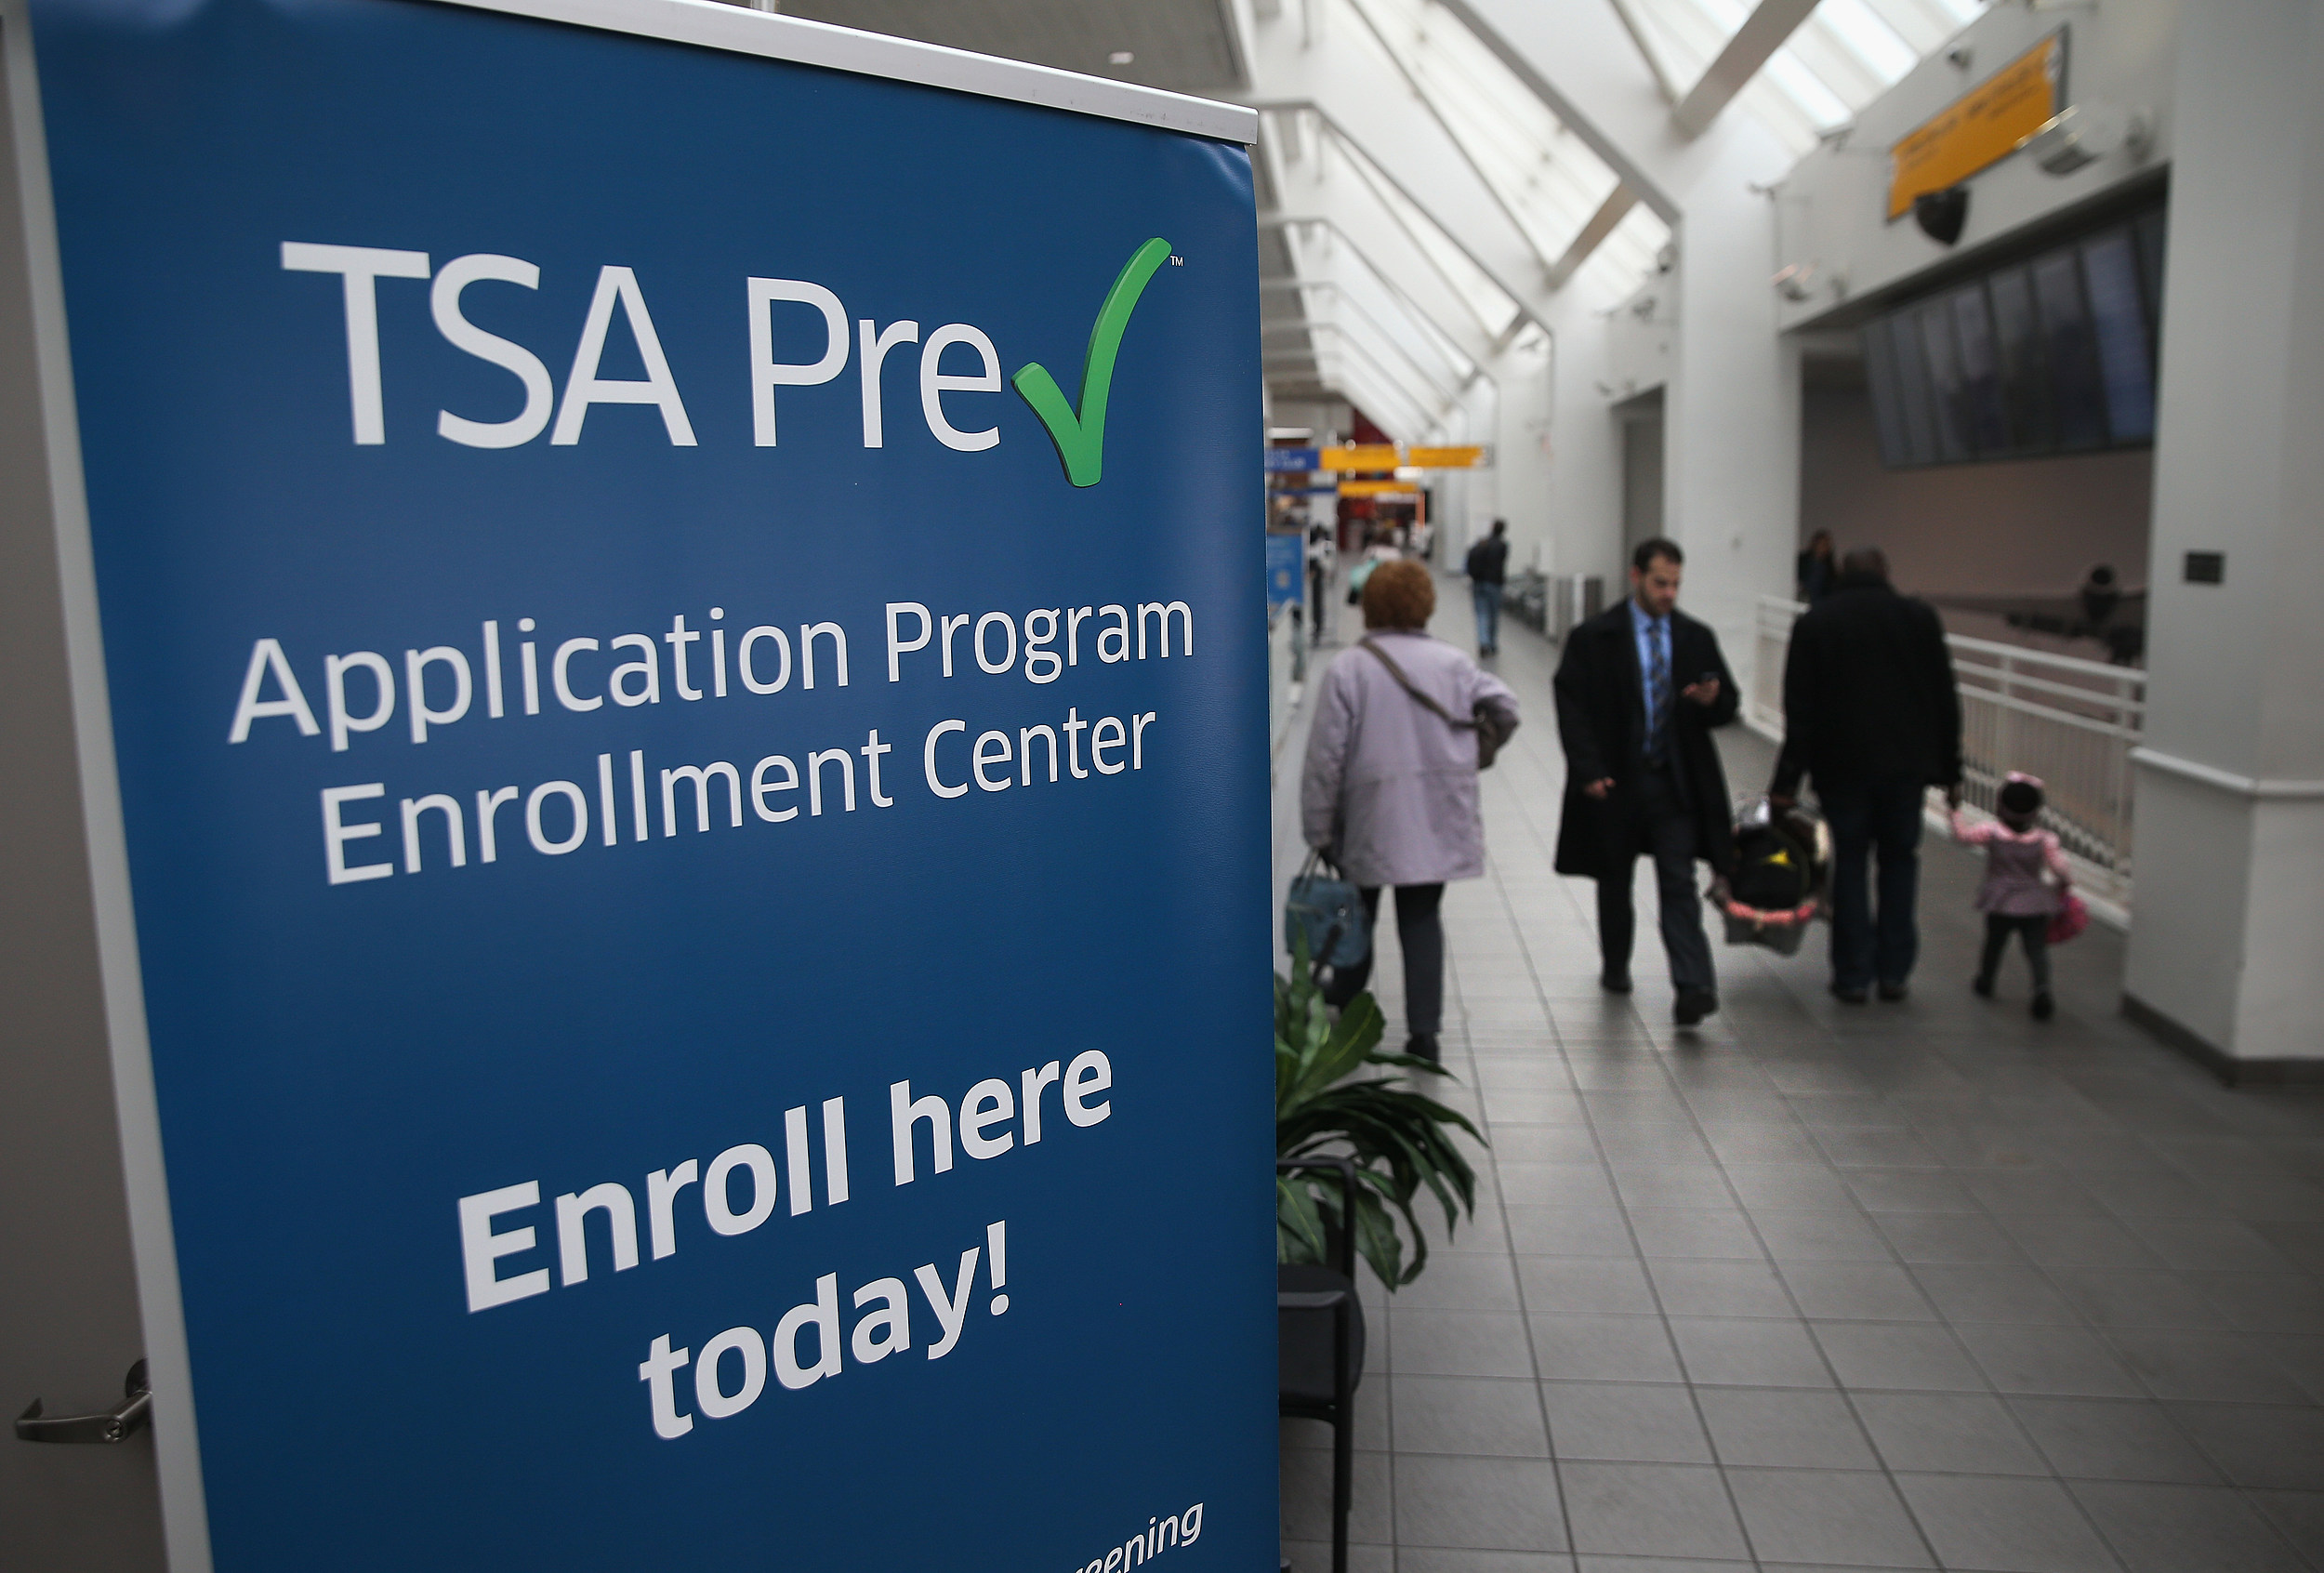 TSA Officials Highlight New Pre Application Program Center At LaGuardia Airport